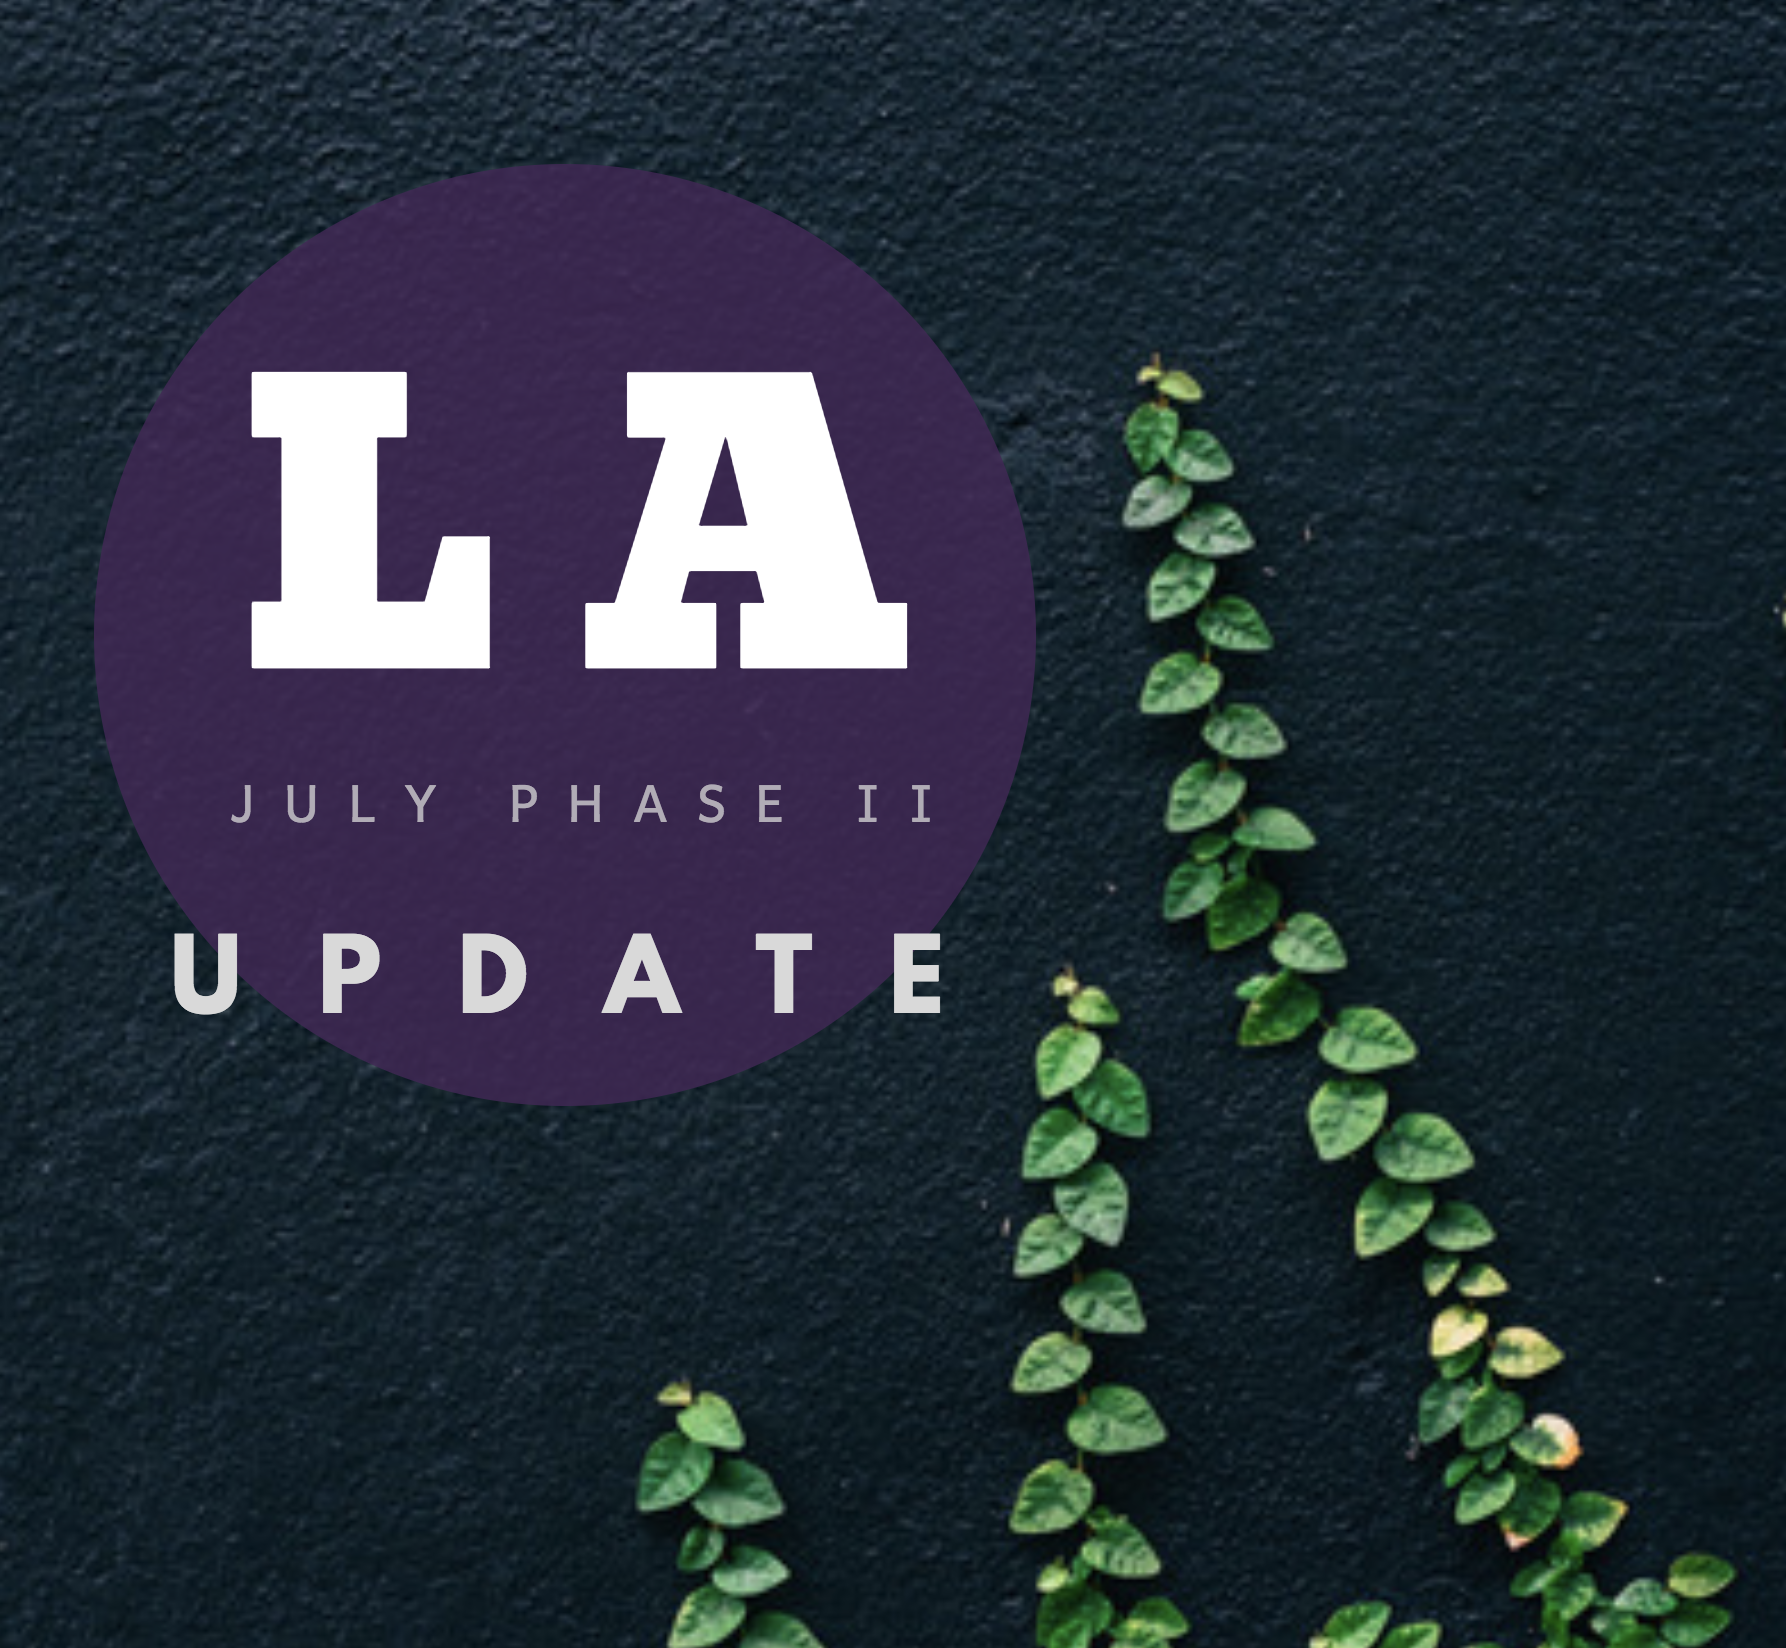 July 1st Deadline Update